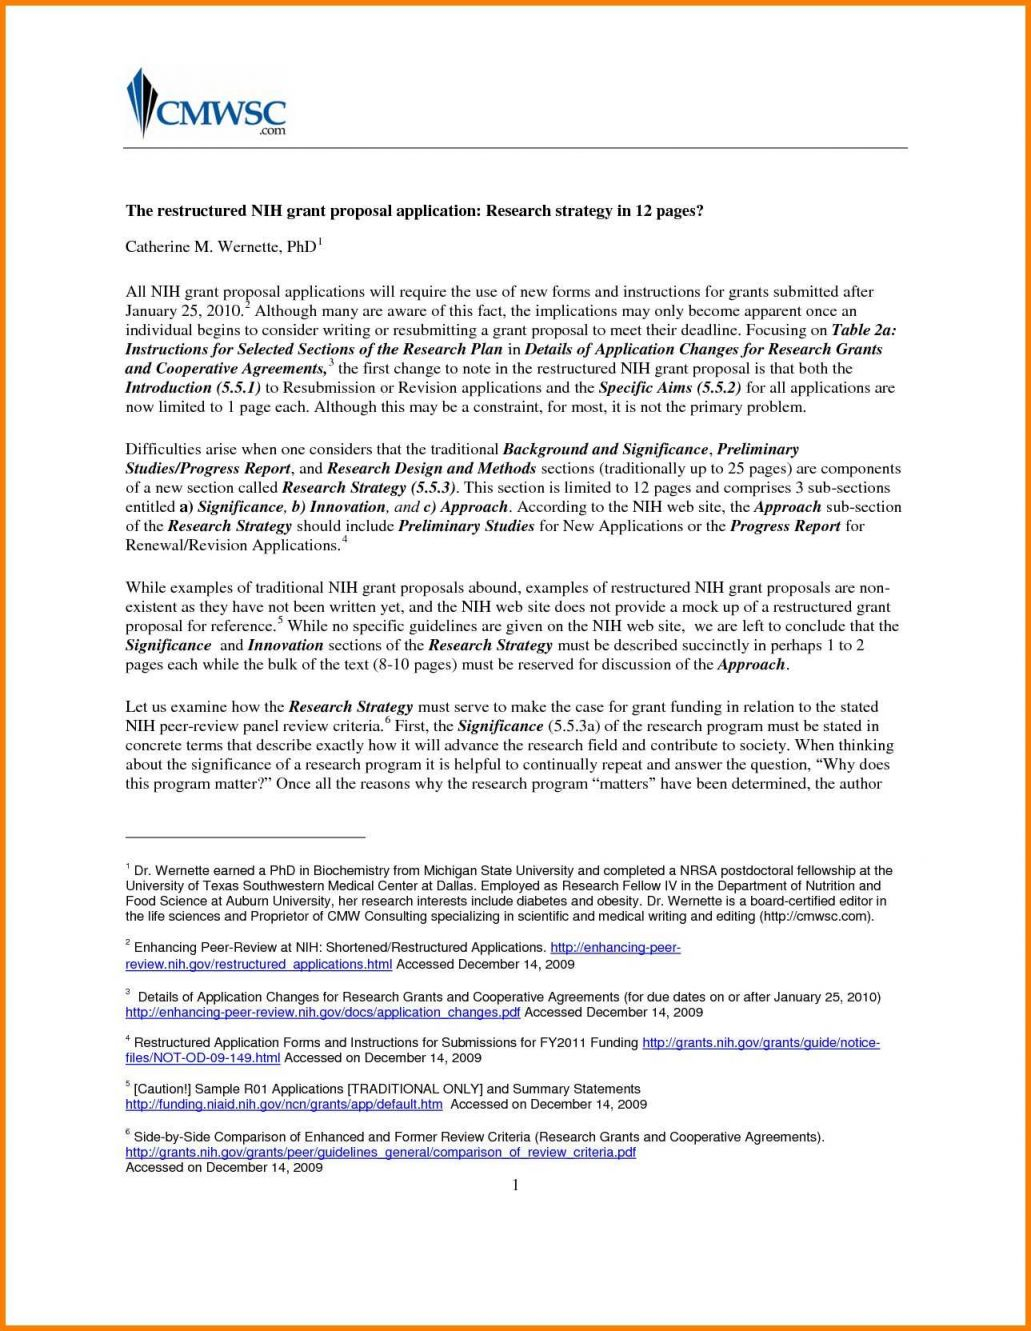 Business Collaboration Letter Template - Fantastic Partnership Proposal Letters Cs71 – Documentaries for Change